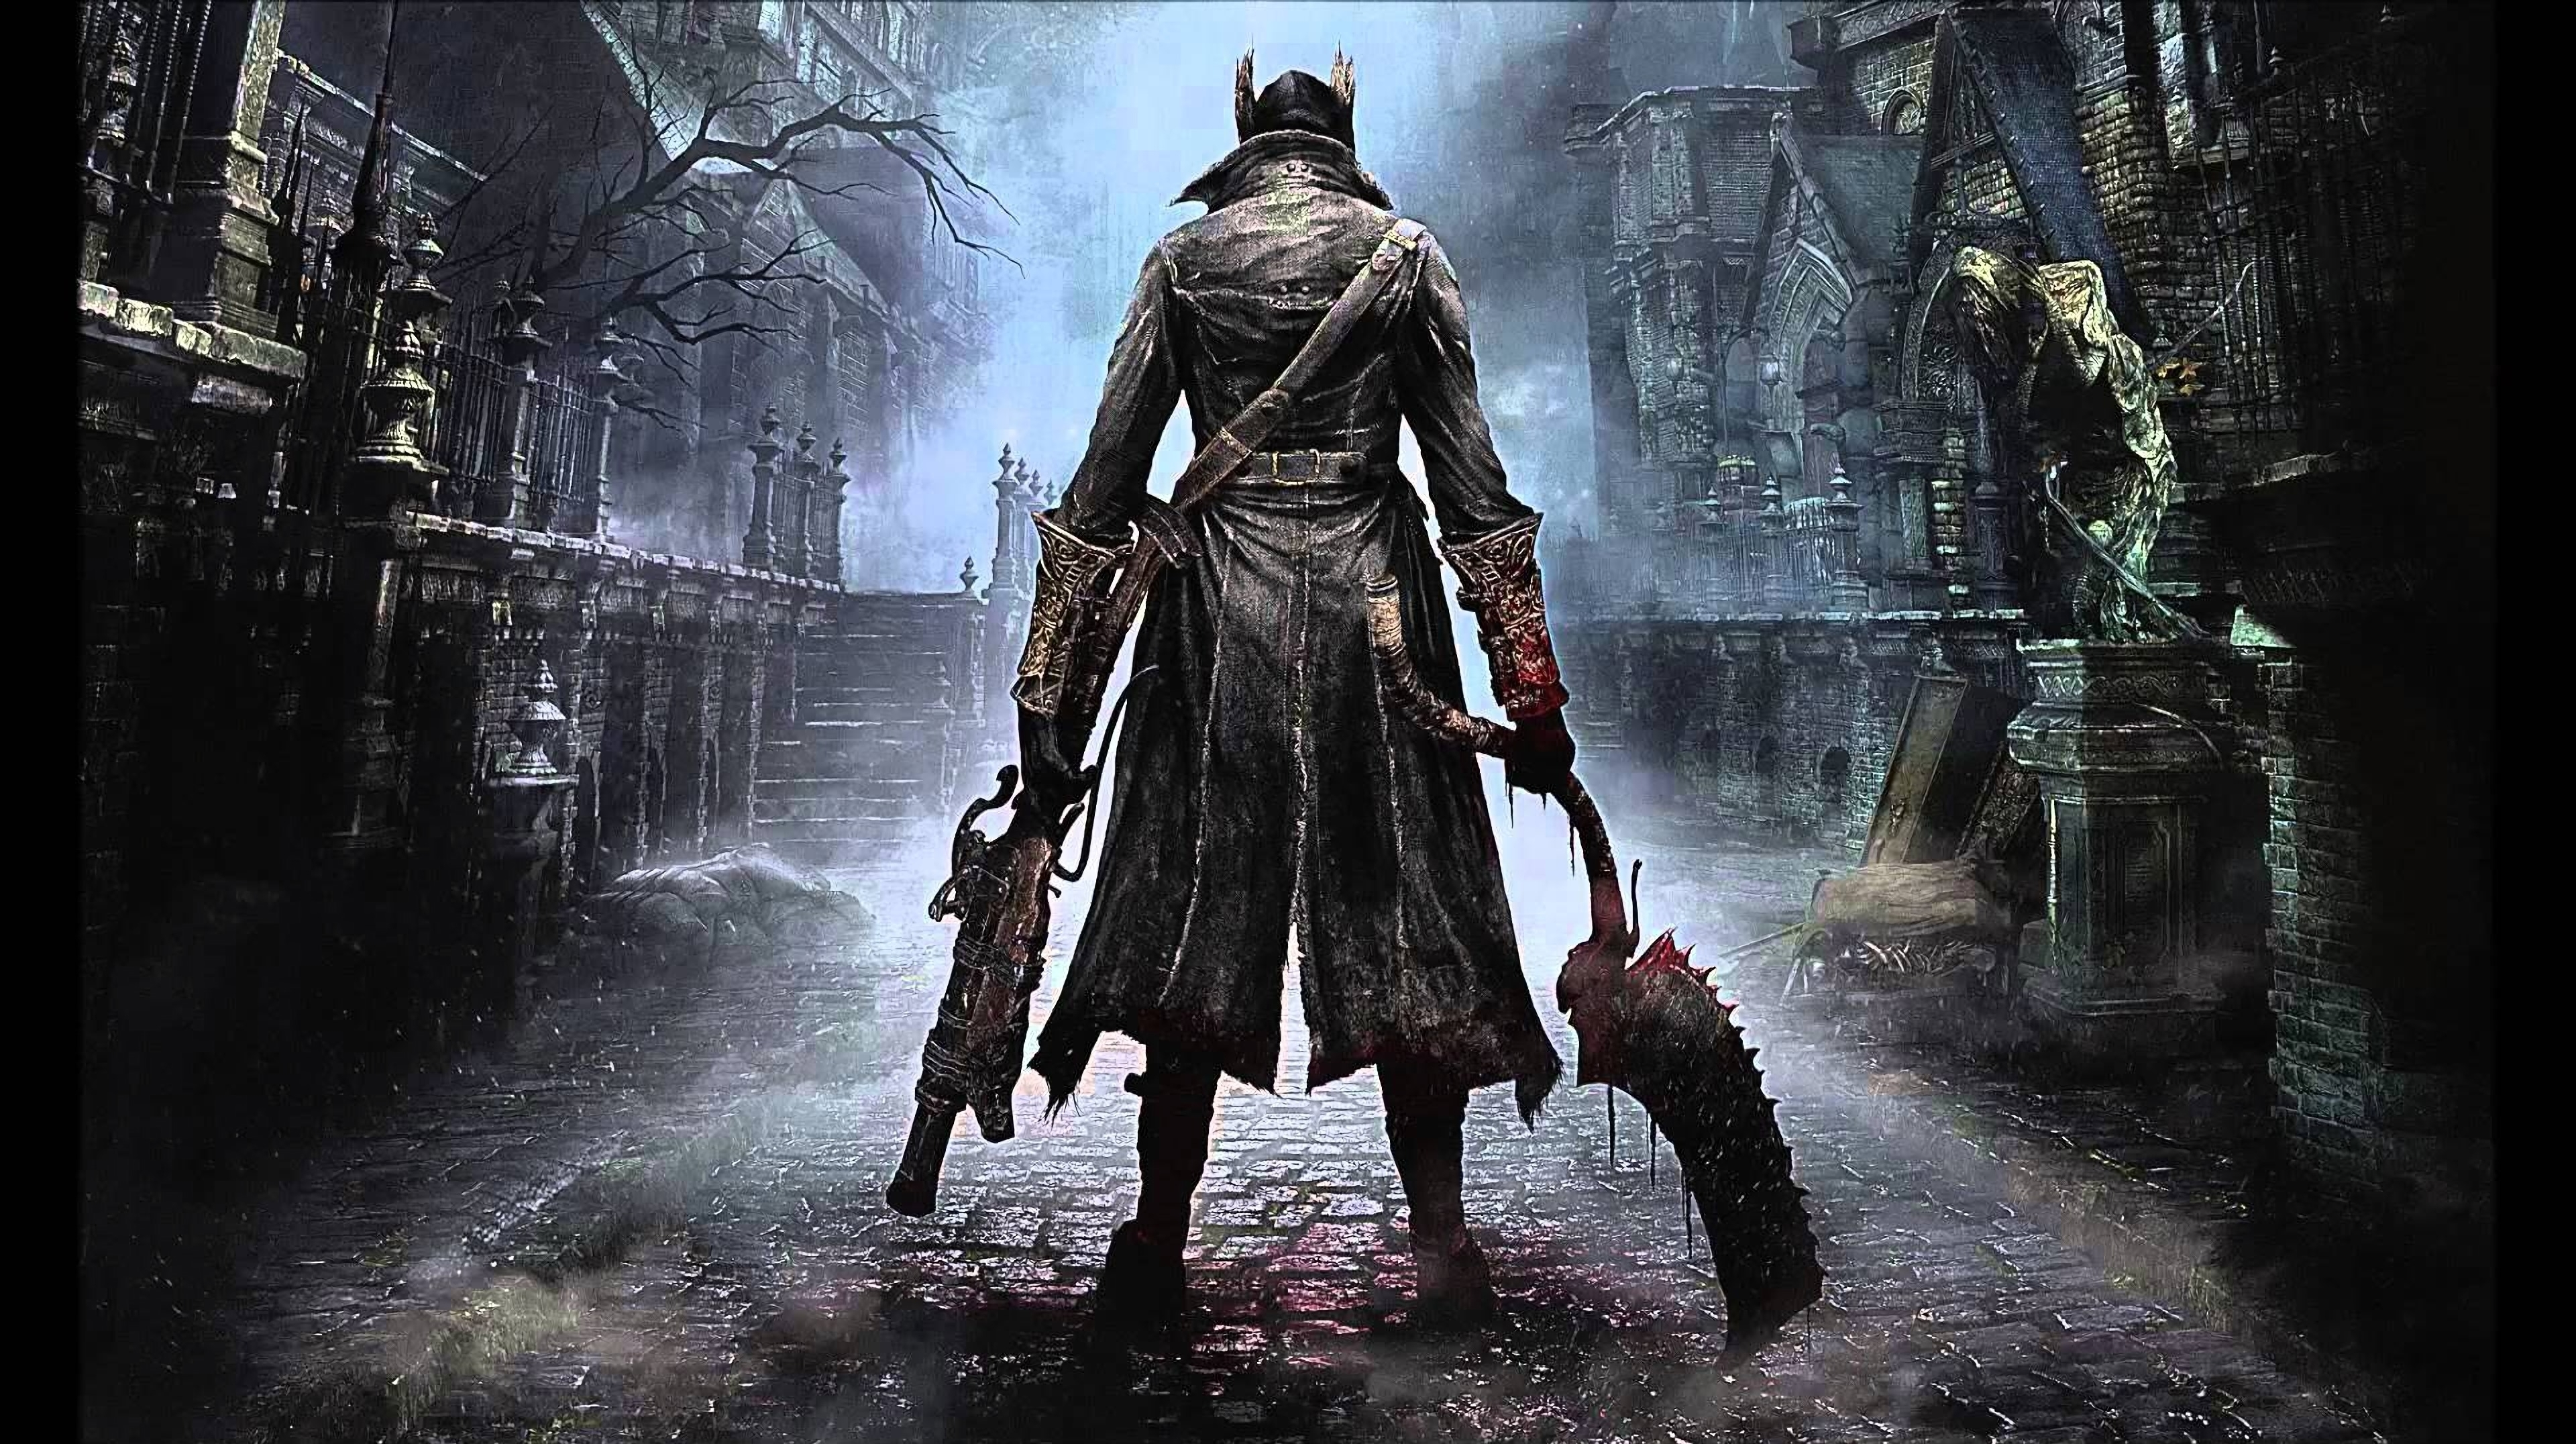 Can Bloodborne run at 60fps on PS5 with 4K upscaling via AI? - technical analysis